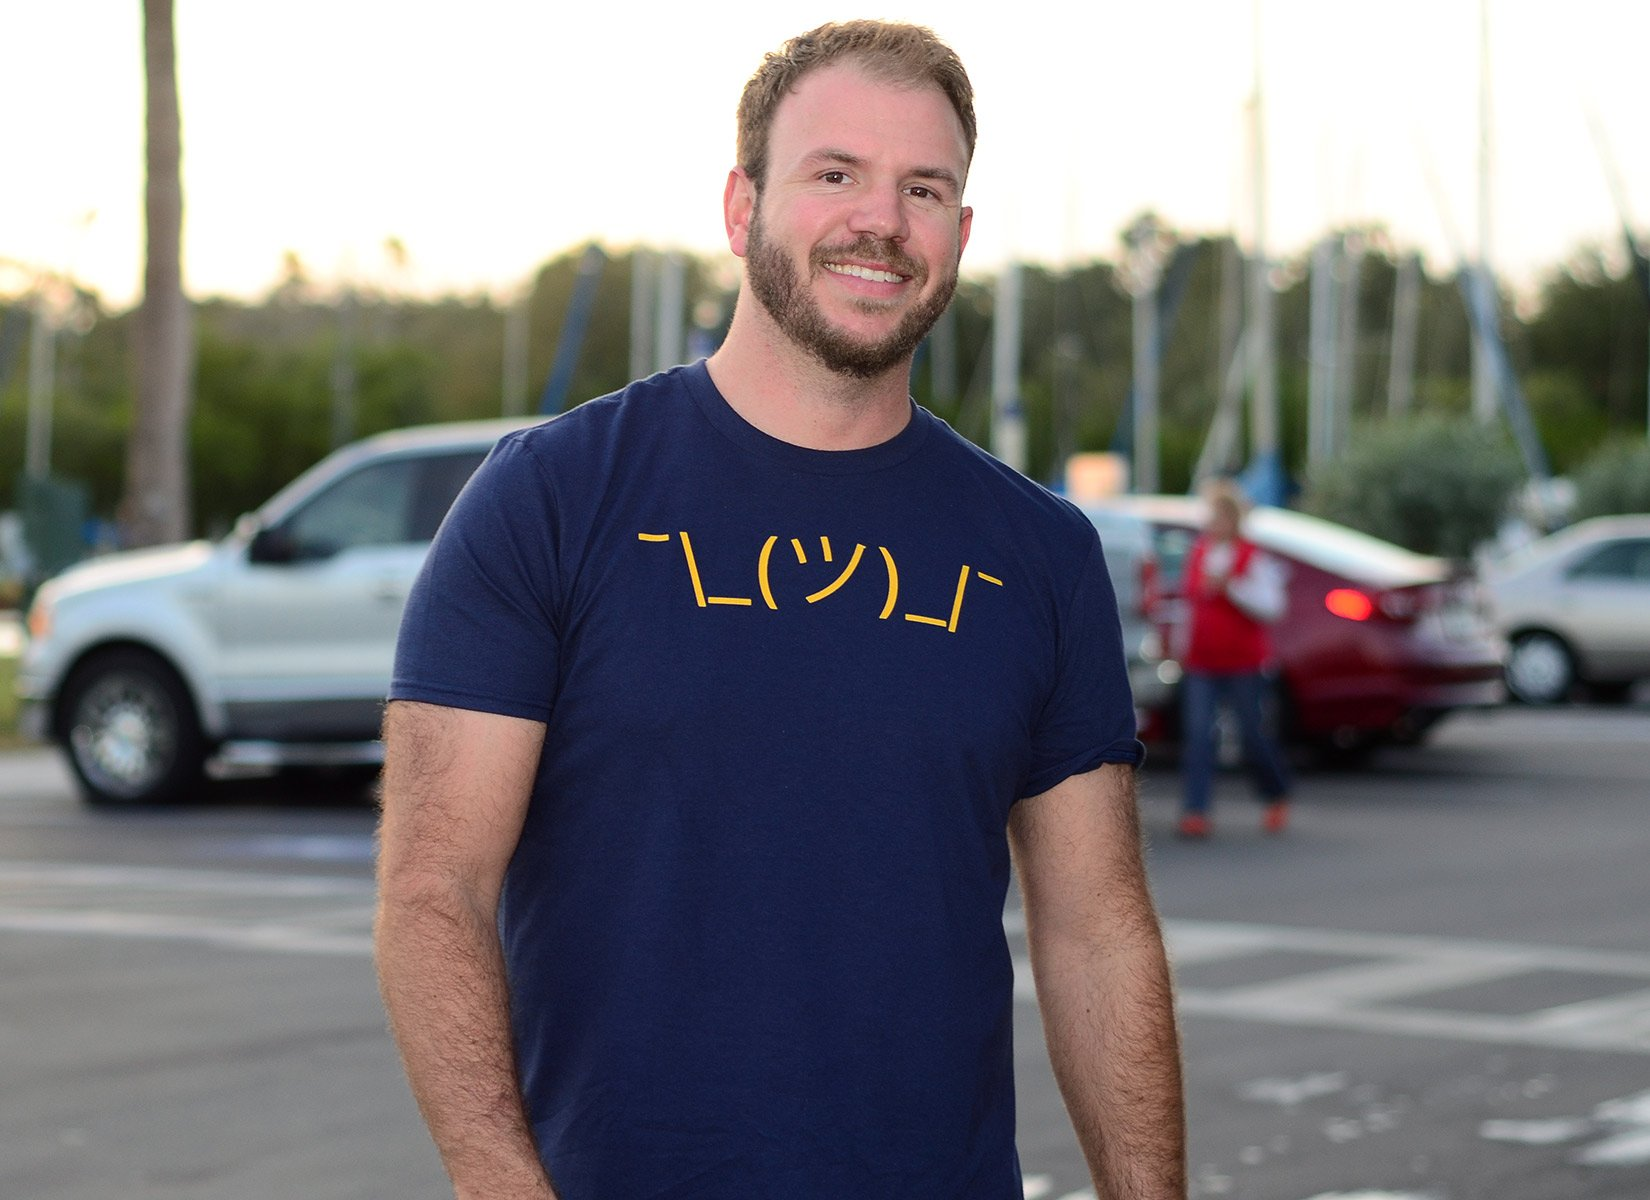 Shrug Emoji on Mens T-Shirt